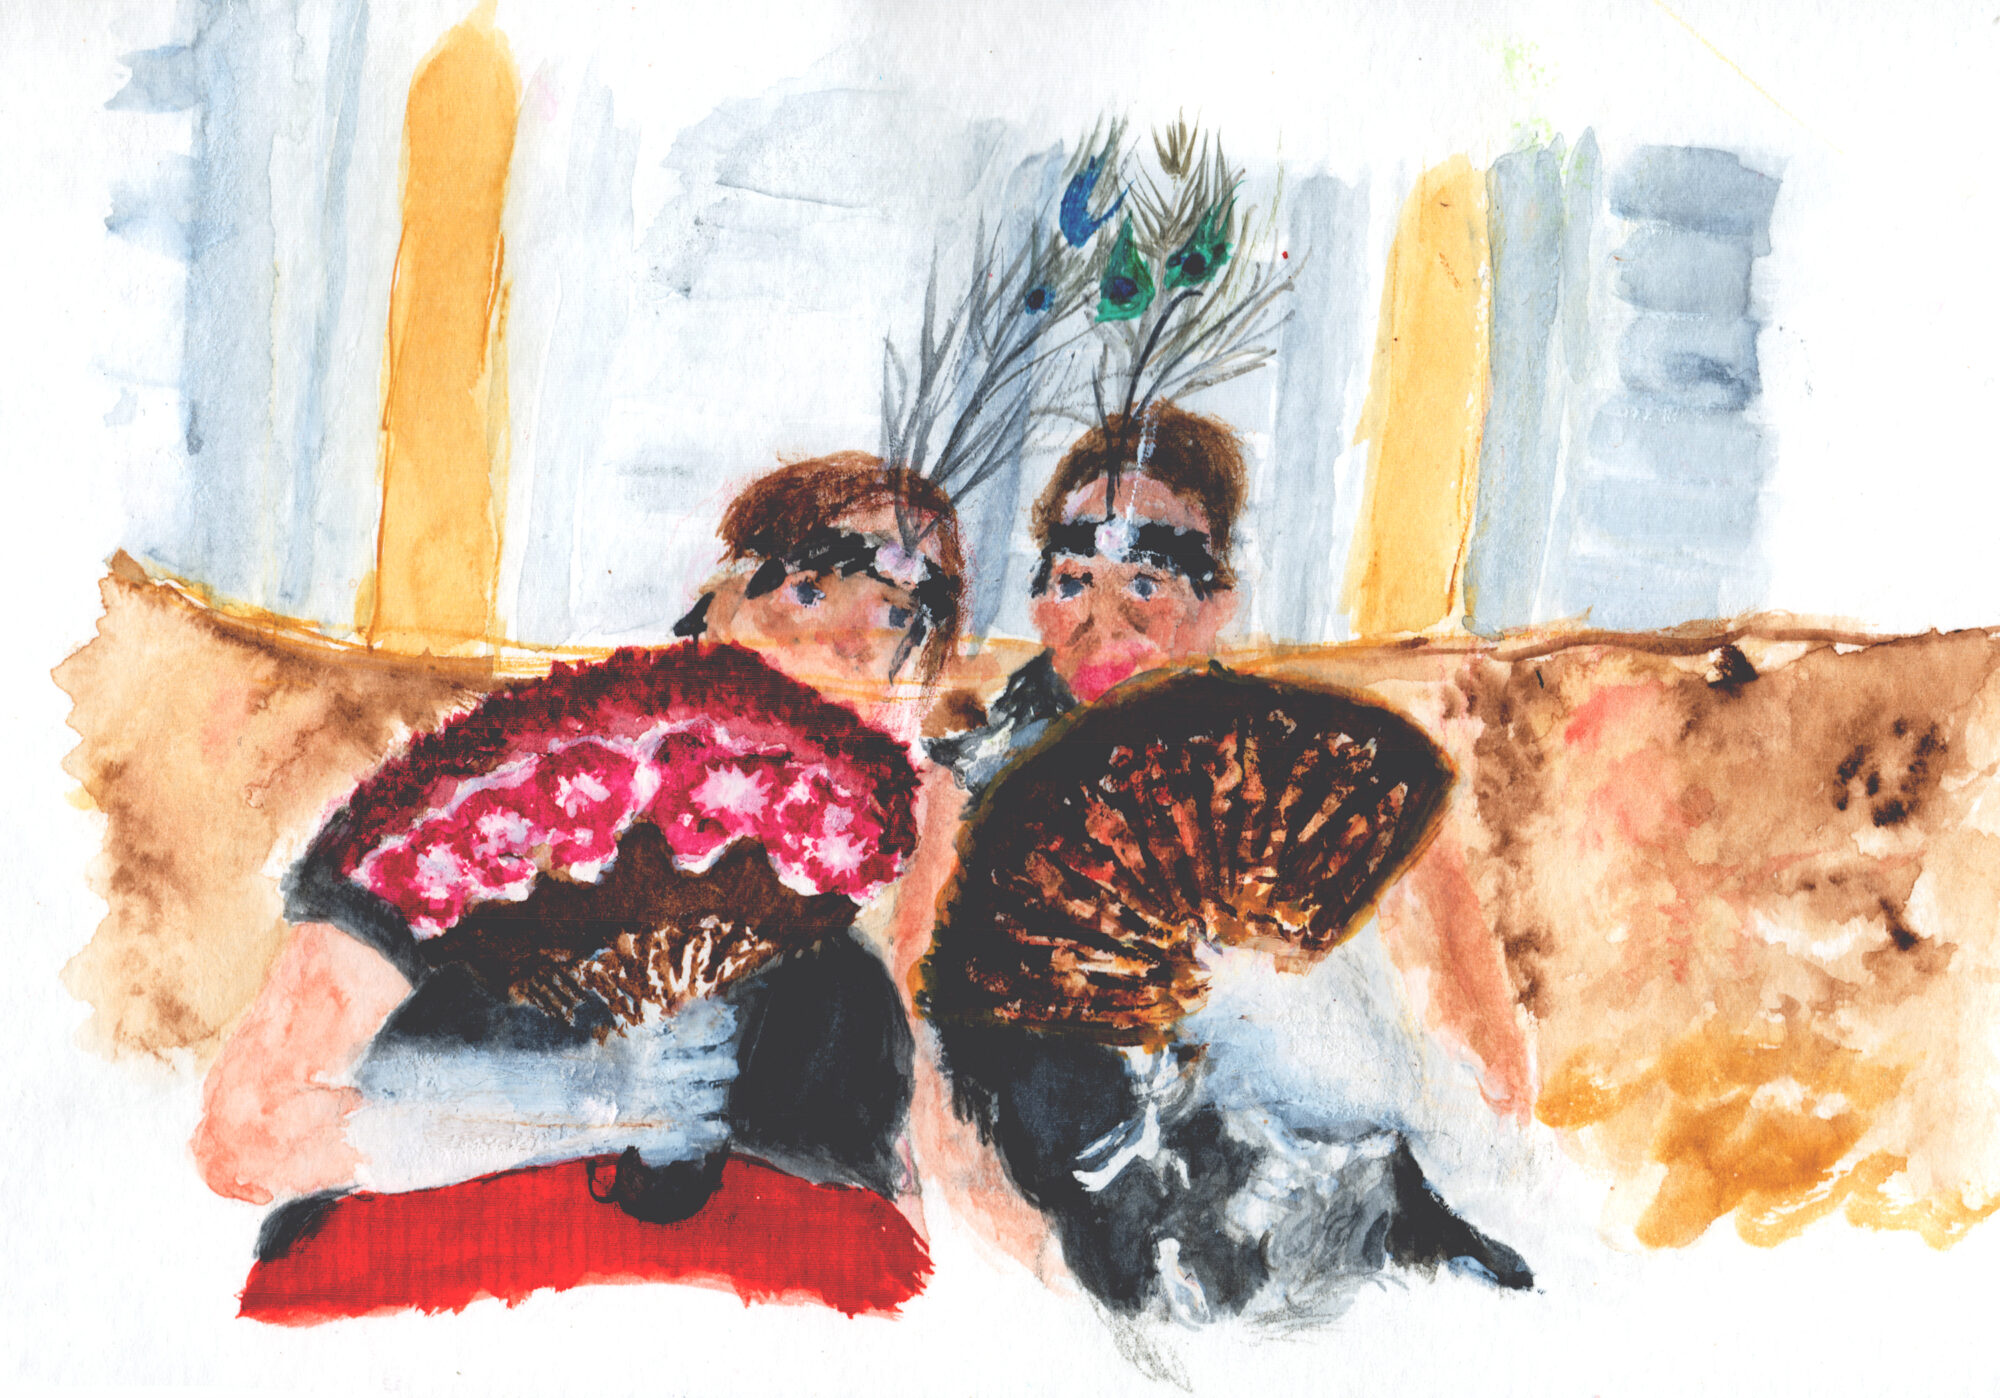 An illustration of two women sitting on a couch, wearing white gloves, feathered headbands and holding intricately-patterned fans.